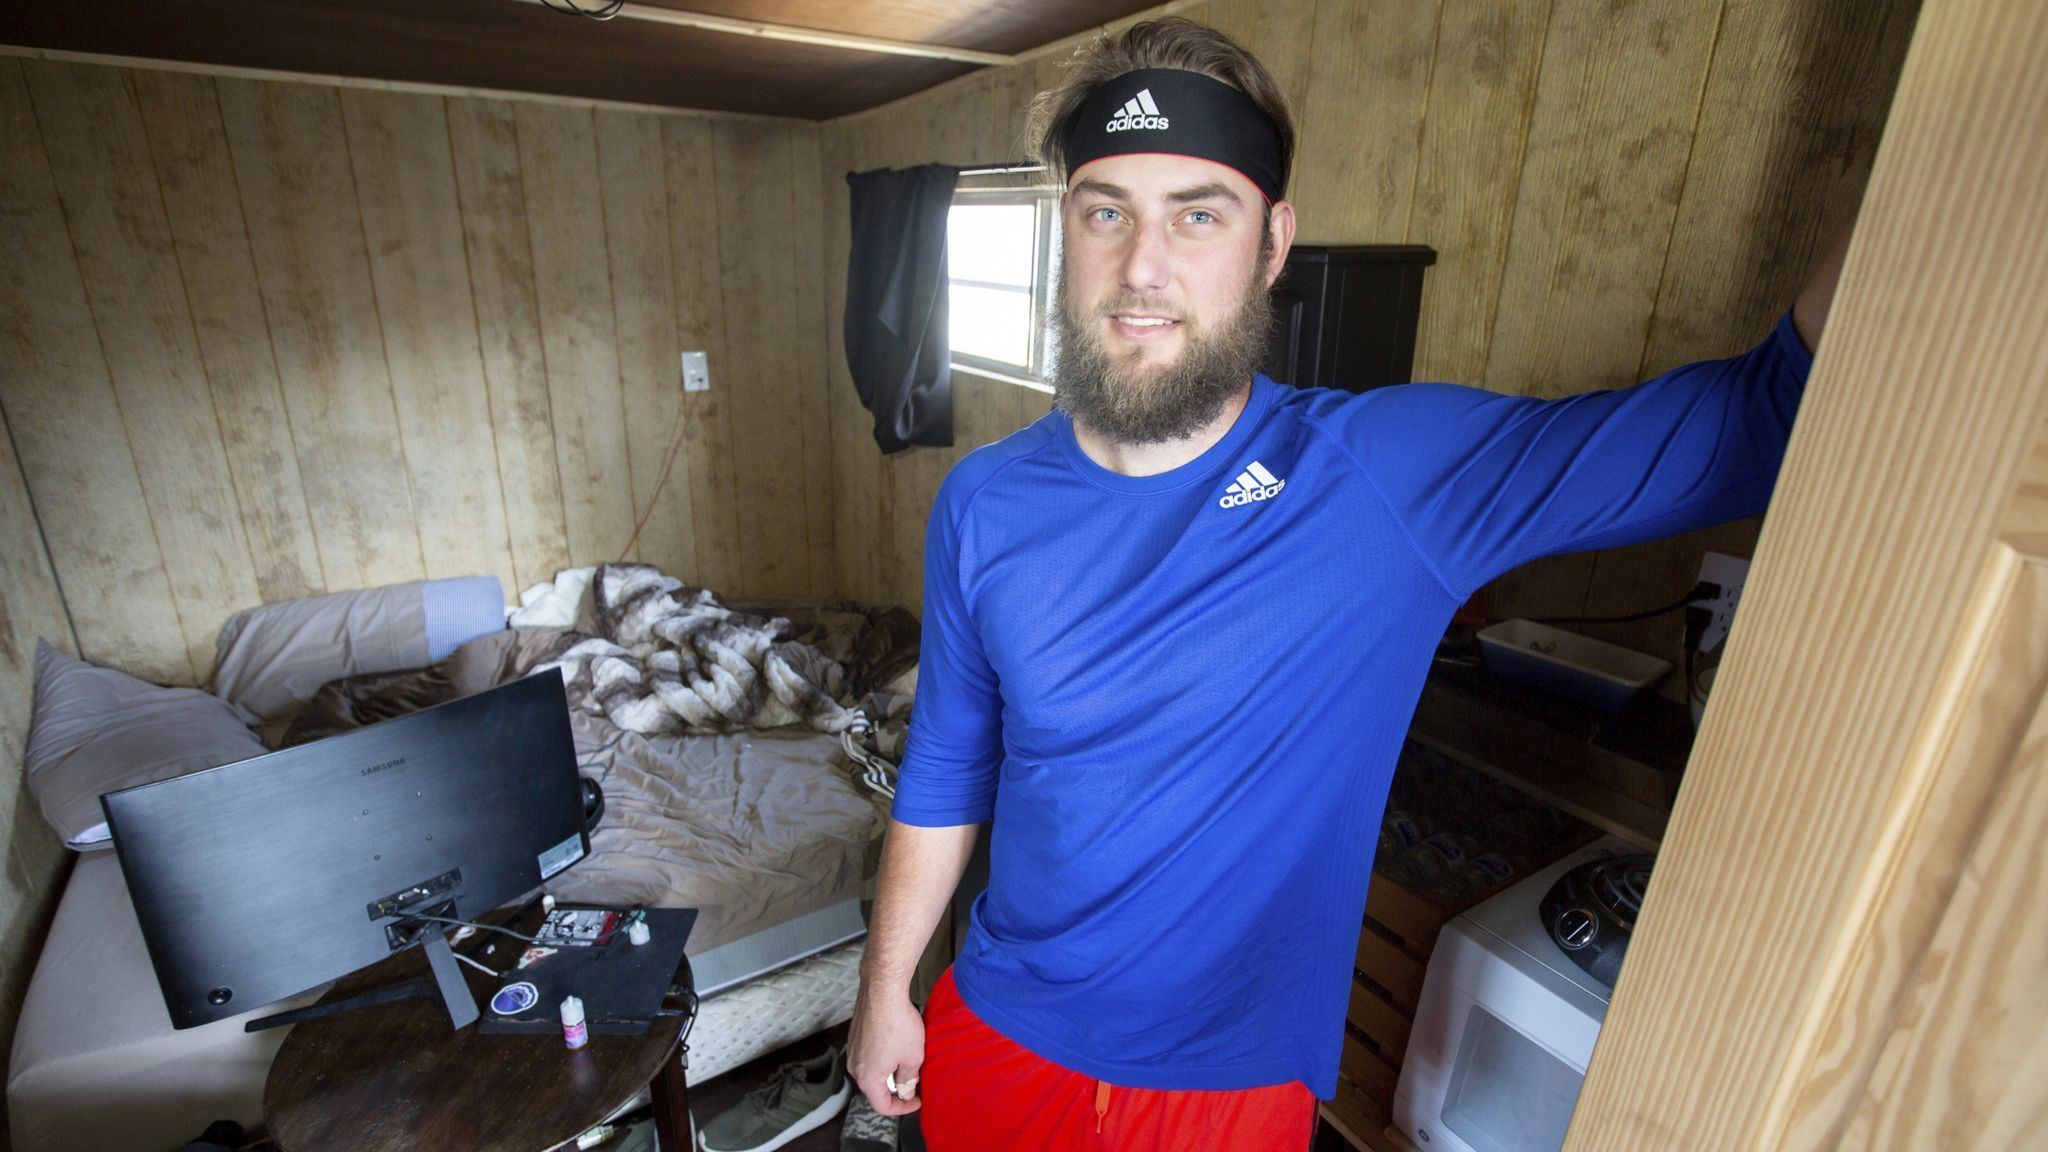 Iowa Cubs pitcher Trevor Clifton finds peace after building low-cost, 104-square-foot tiny house